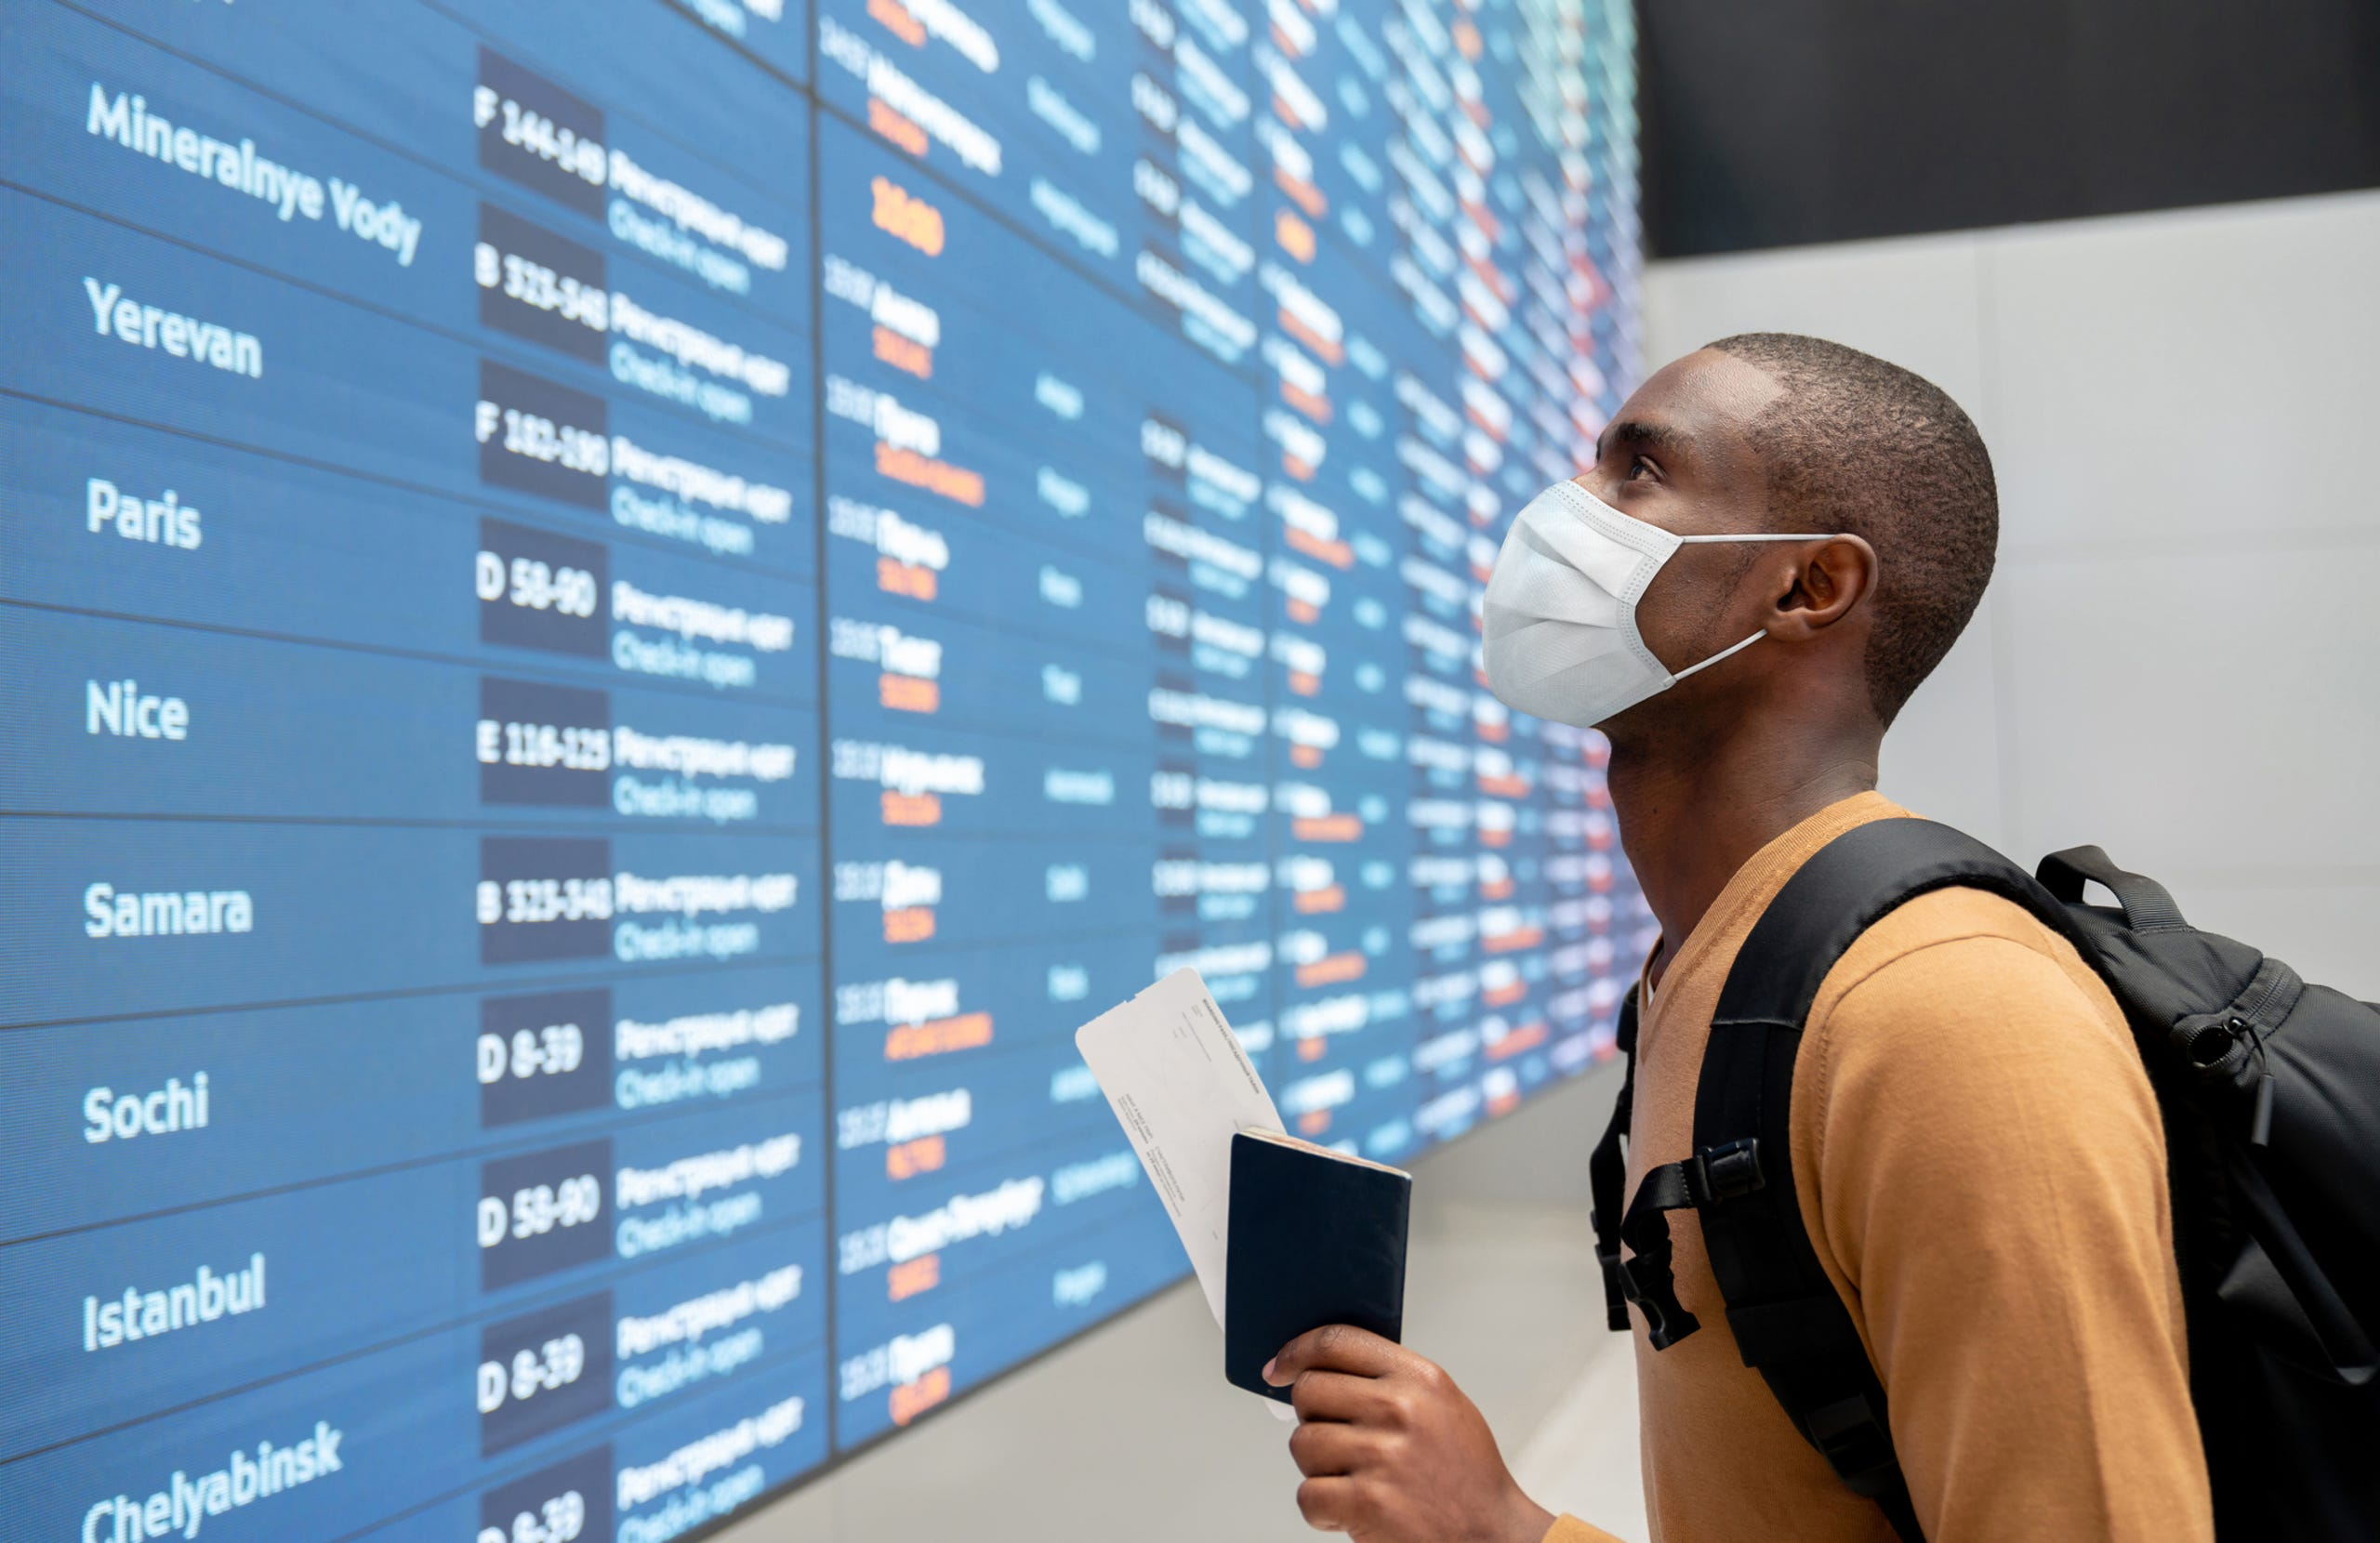 Passengers are required to wear a mask while flying on a plane for all major U.S. airlines and at the airport.